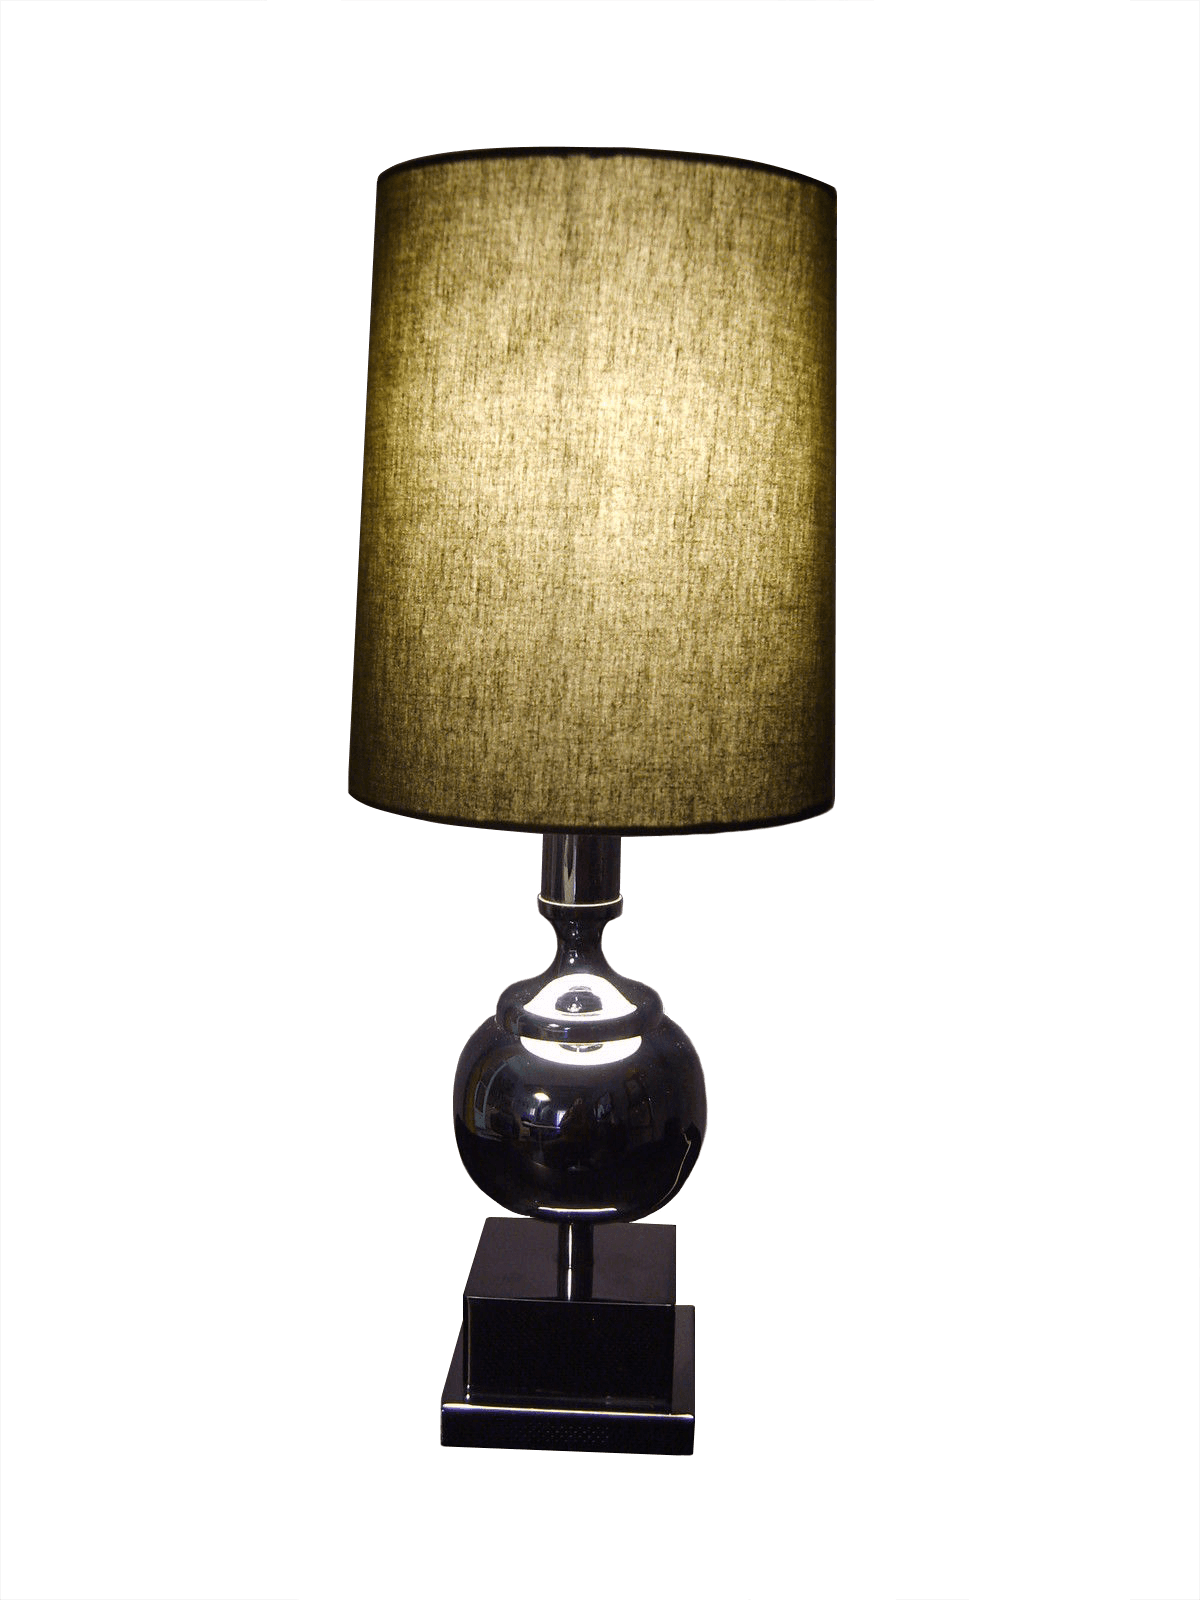 Table Lamps Archives Page 5 Of 11 The Socialite Family